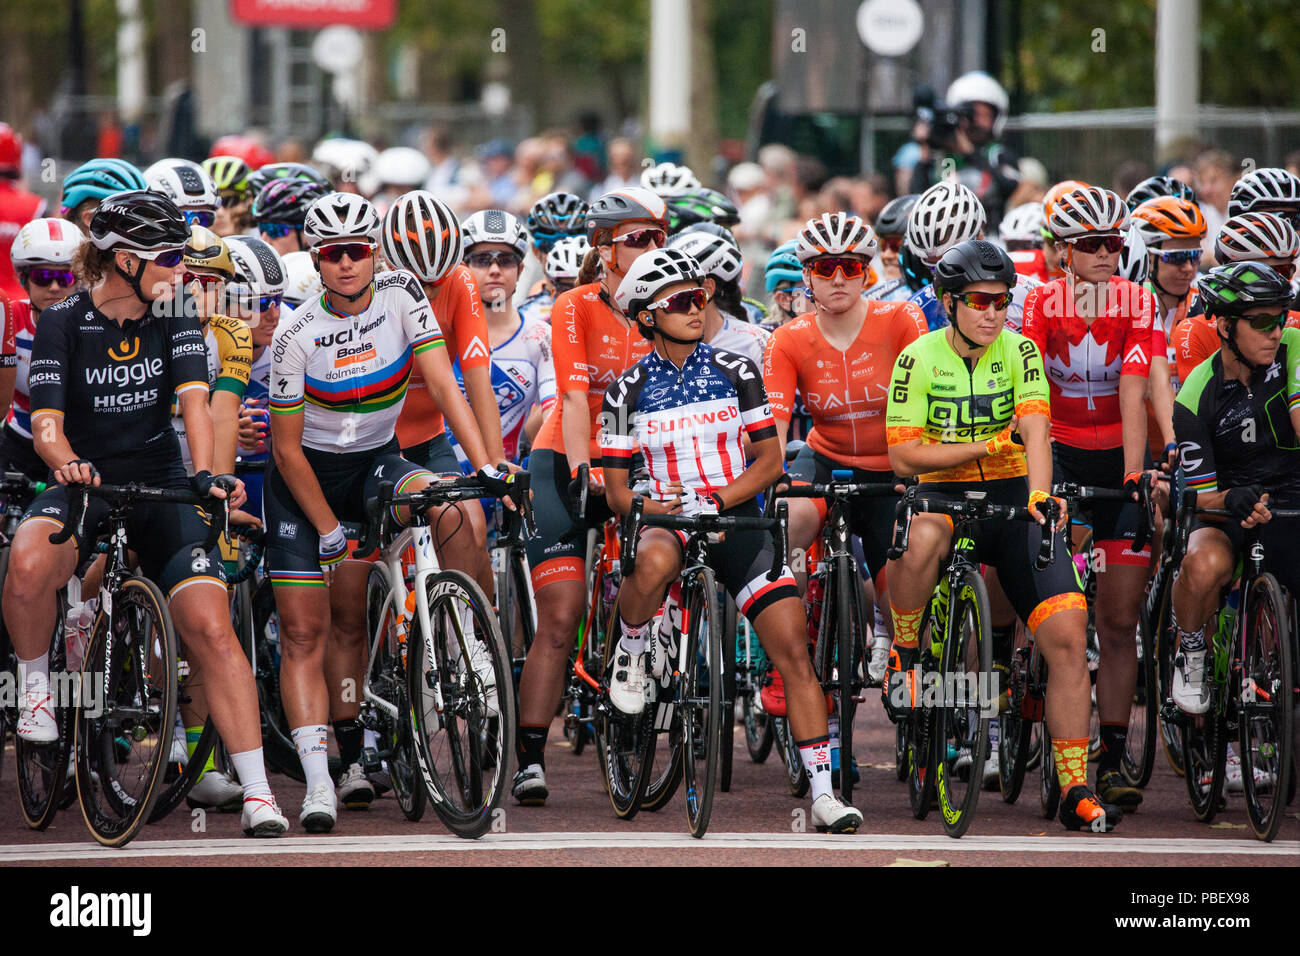 London, UK. 28th July, 2018. Elite women riders, including eventual race winner Kirsten Wild (l) of the Wiggle High5 team, prepare to compete in the Prudential RideLondon Classique, the richest women's one-day race in cycling. The race is part of the UCI Women's World Tour and offers spectators the opportunity to see the world's best women's cycling teams battling it out over 12 laps of a closed 5.4km circuit starting and finishing on The Mall. Credit: Mark Kerrison/Alamy Live News Stock Photo